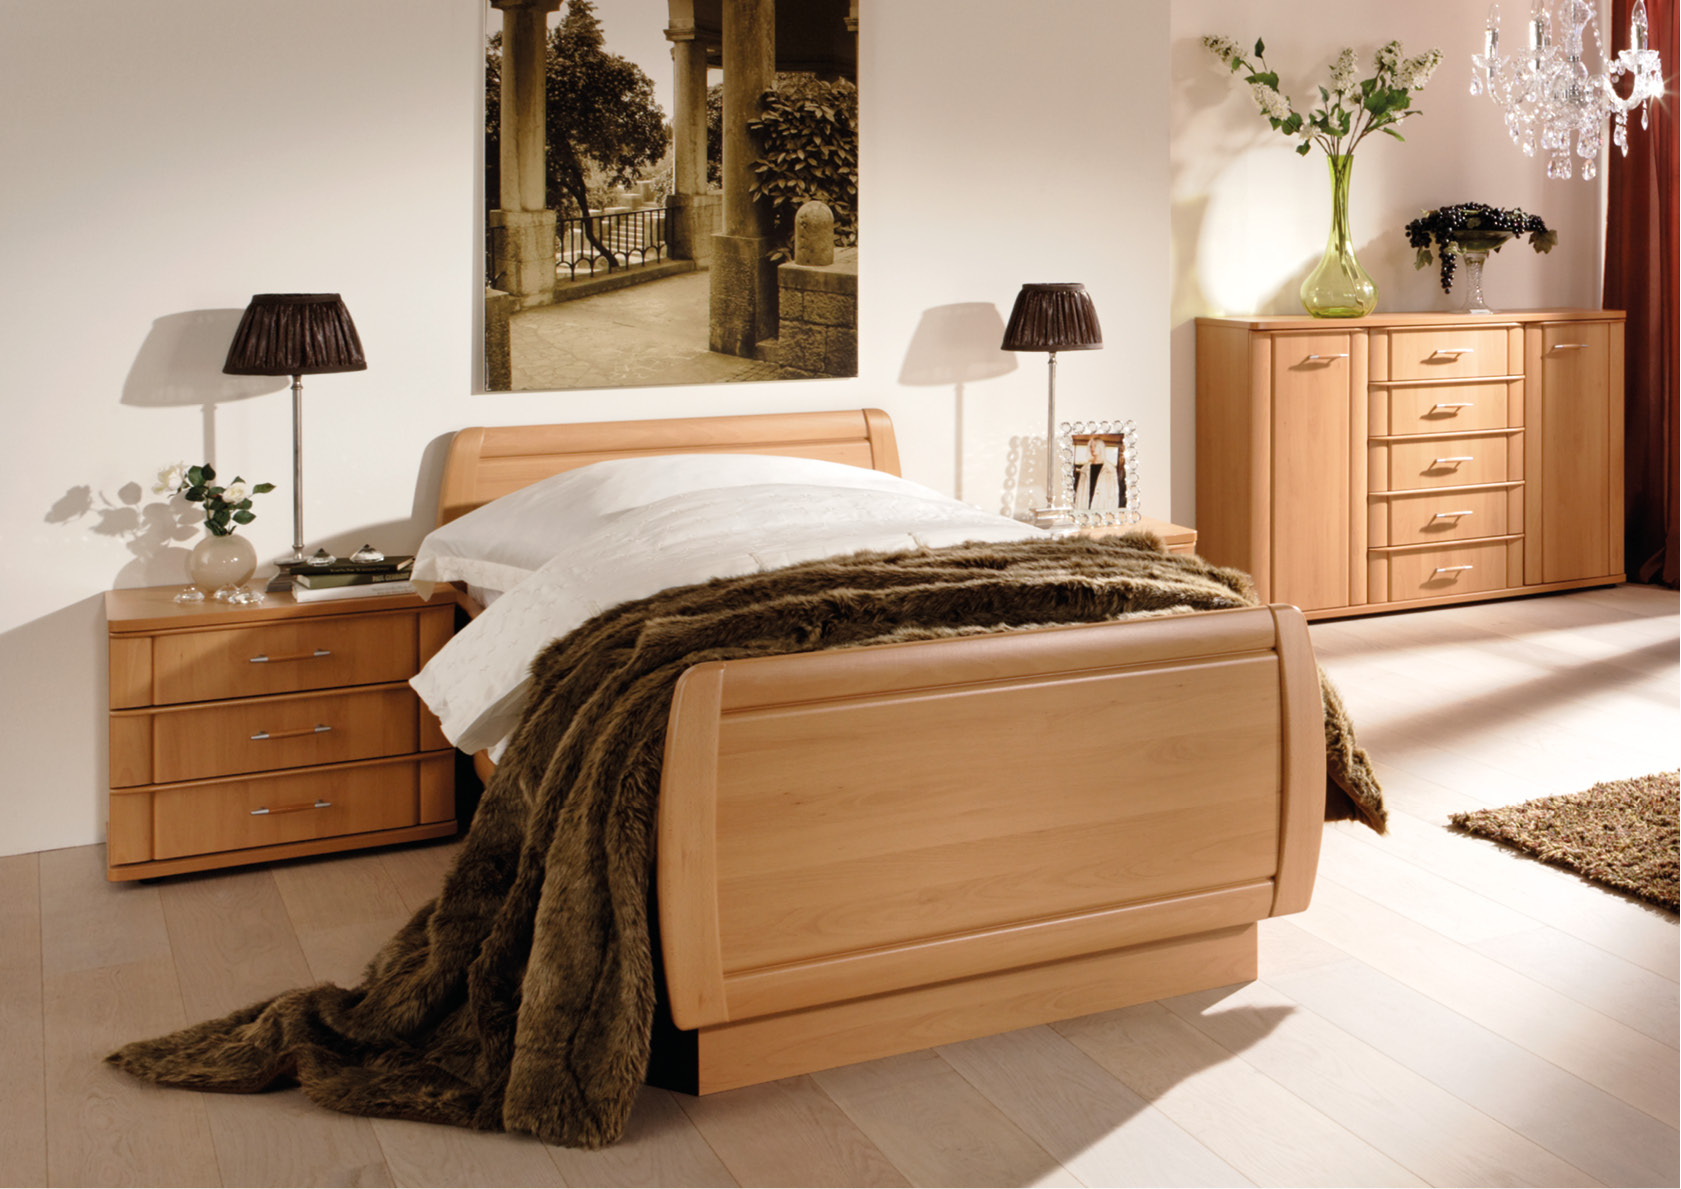 komfort kompaktbett betten thoba handels gmbh. Black Bedroom Furniture Sets. Home Design Ideas